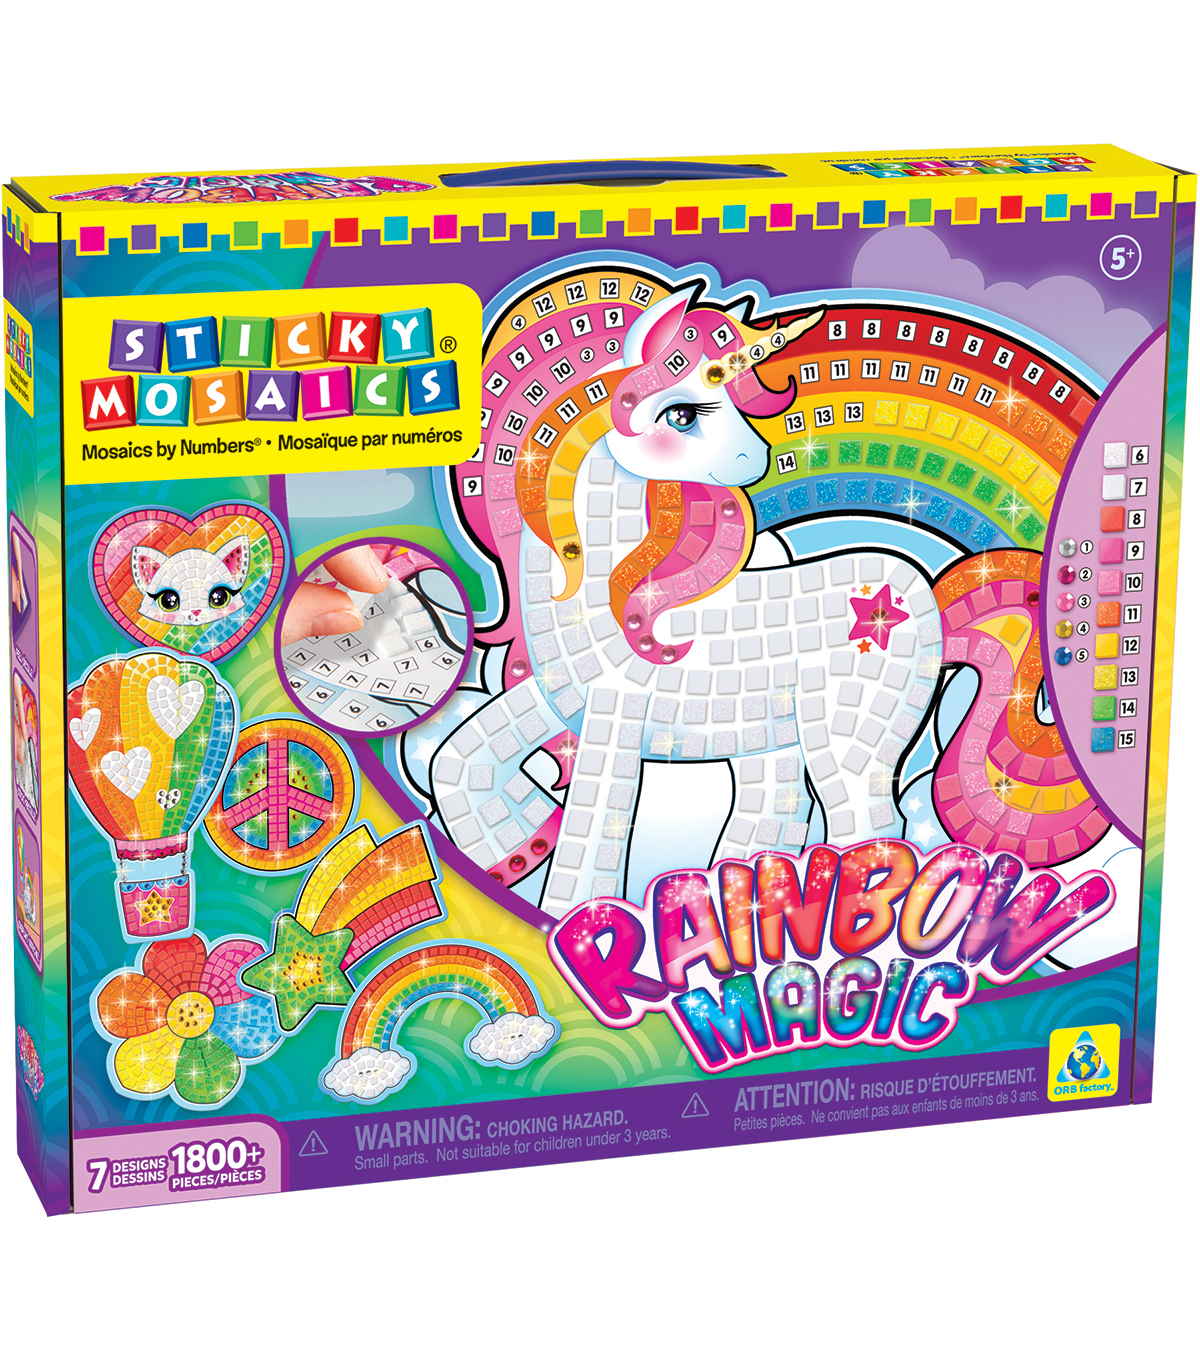 Sticky Mosaics Rainbow Magic Kit